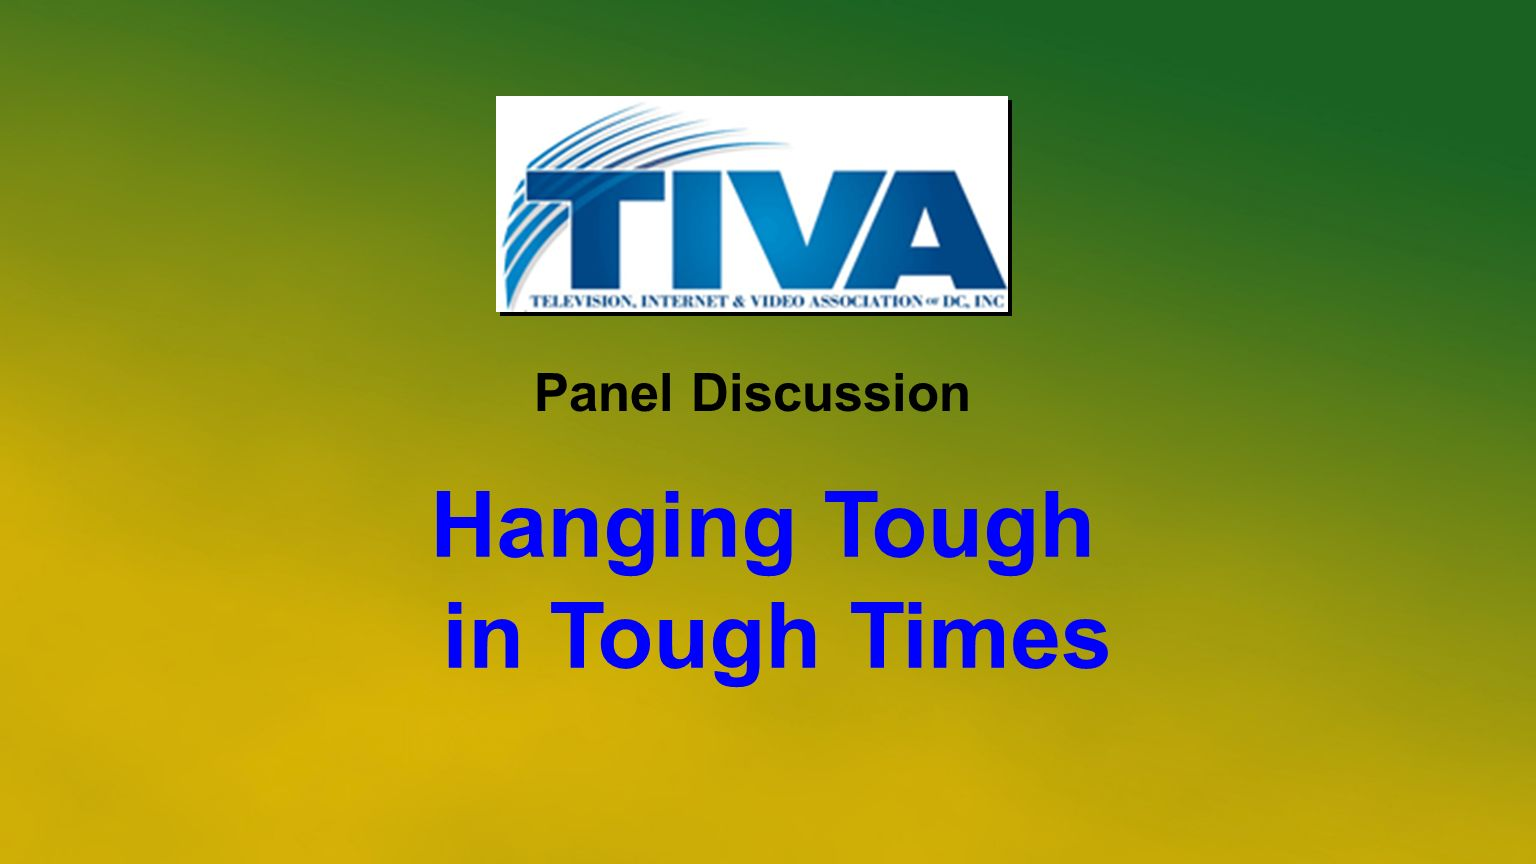 Hanging Tough in Tough Times Panel Discussion